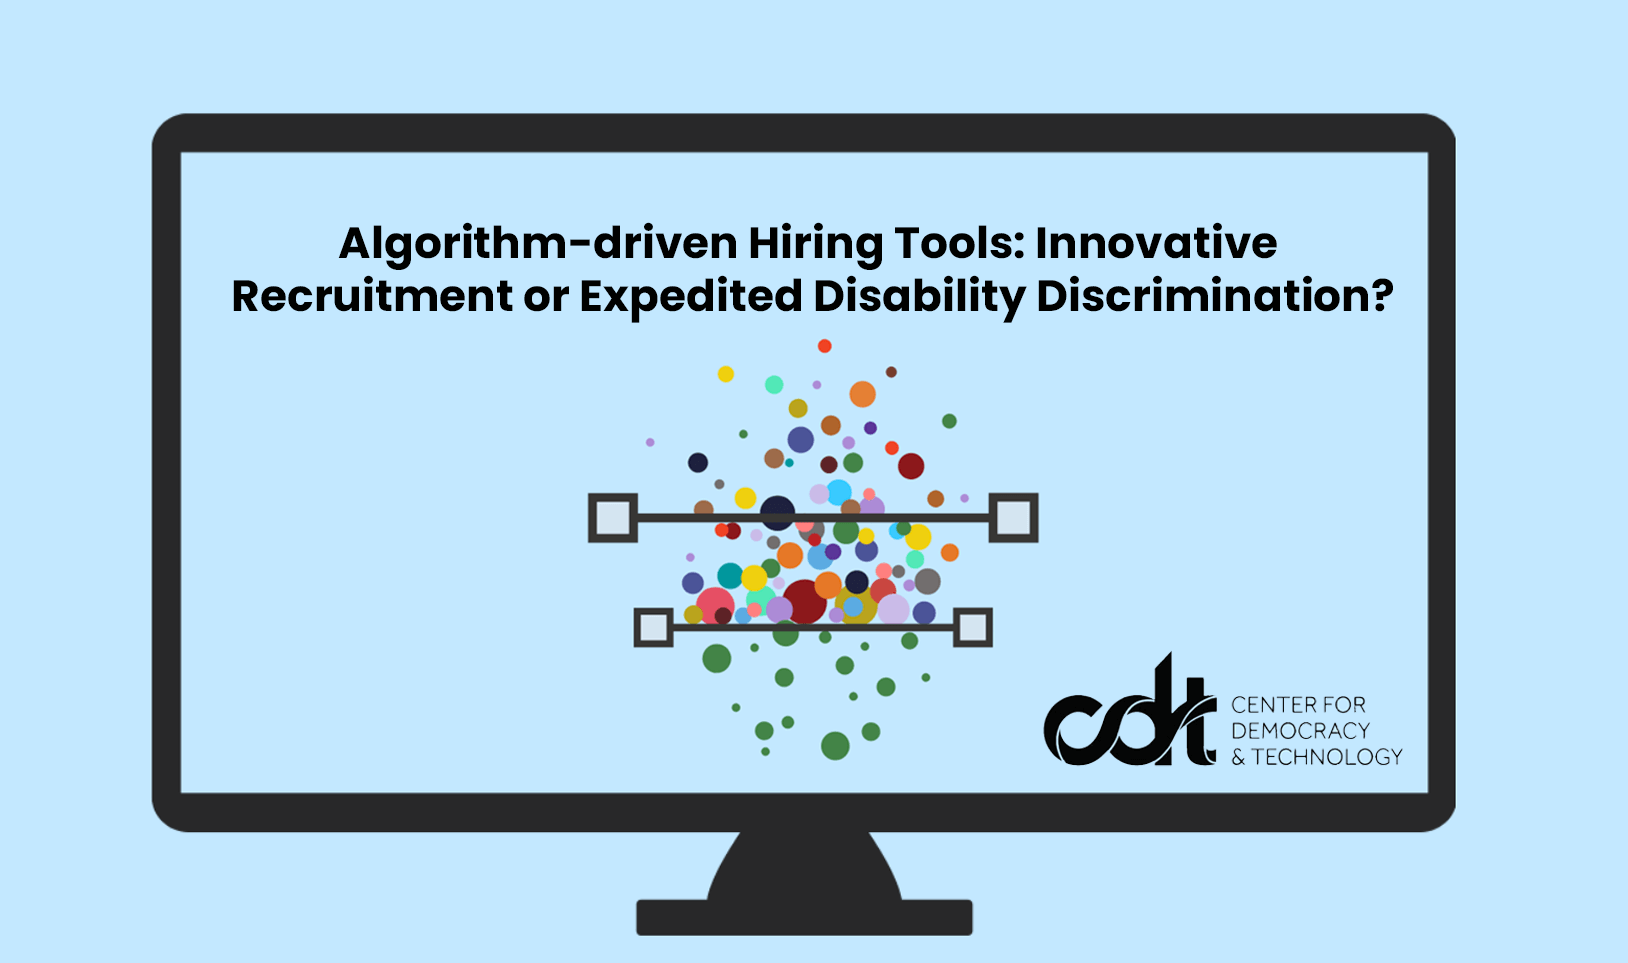 Algorithm-driven Hiring Tools- Innovative Recruitment or Expedited Disability Discrimination?